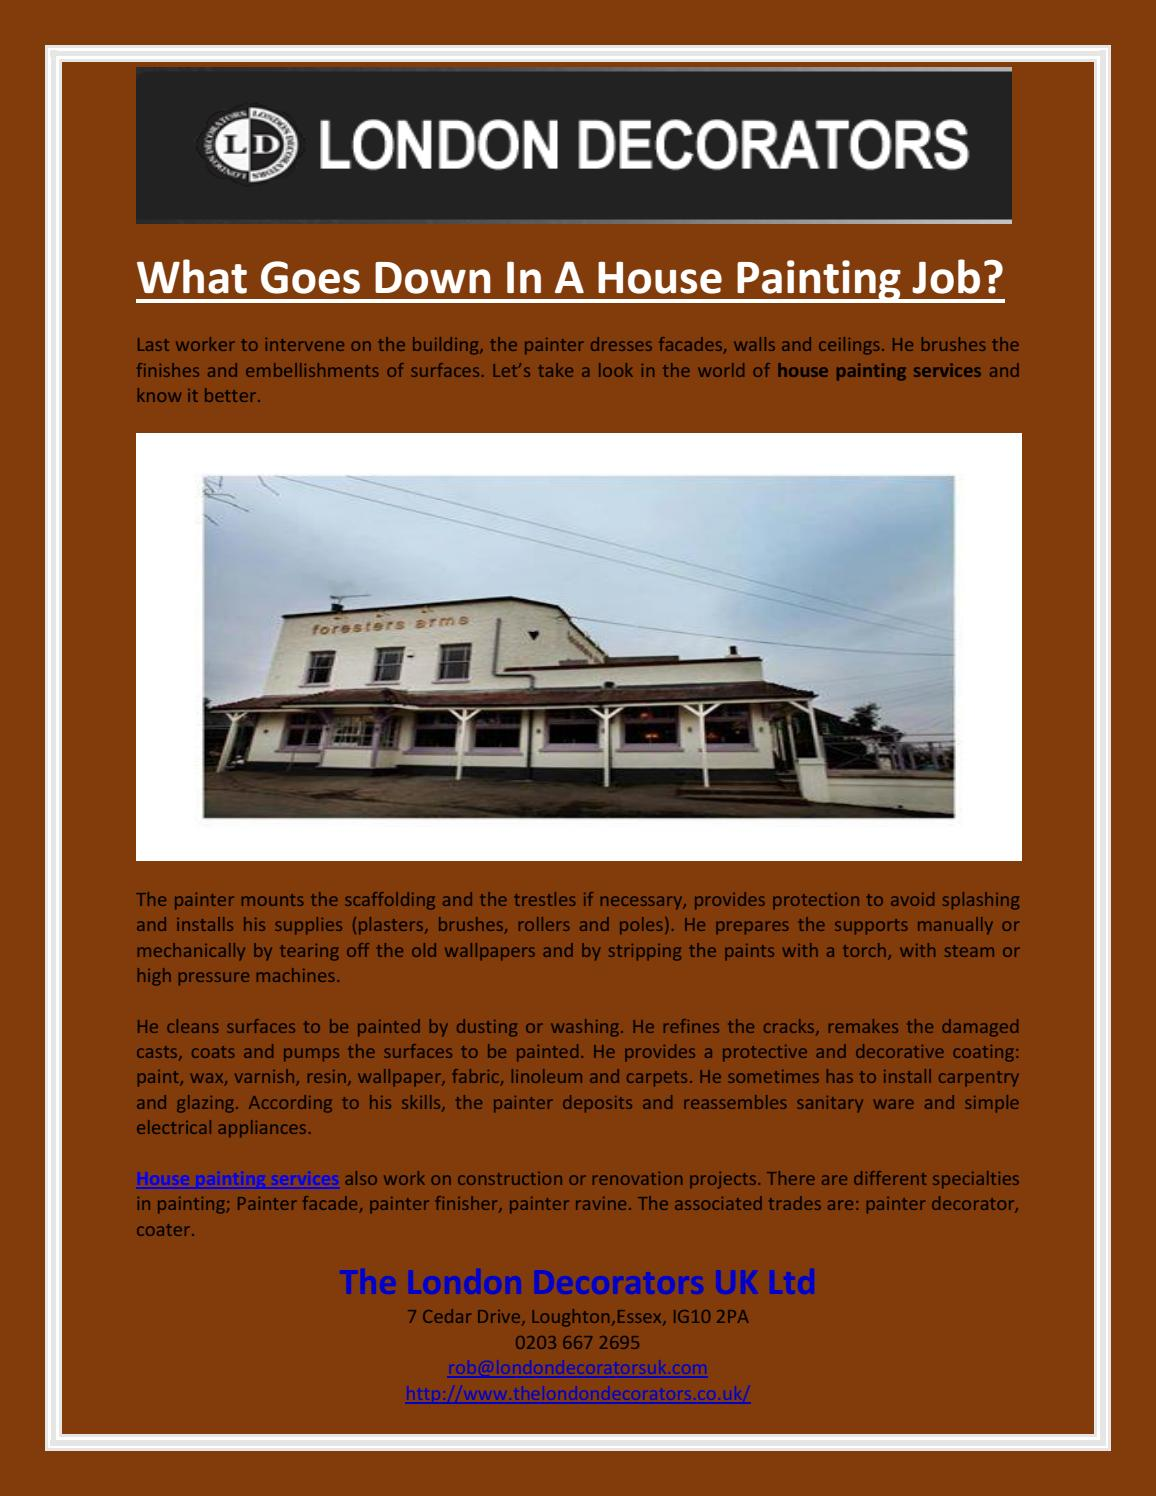 What Goes Down In A House Painting Job By The London Decorators Uk